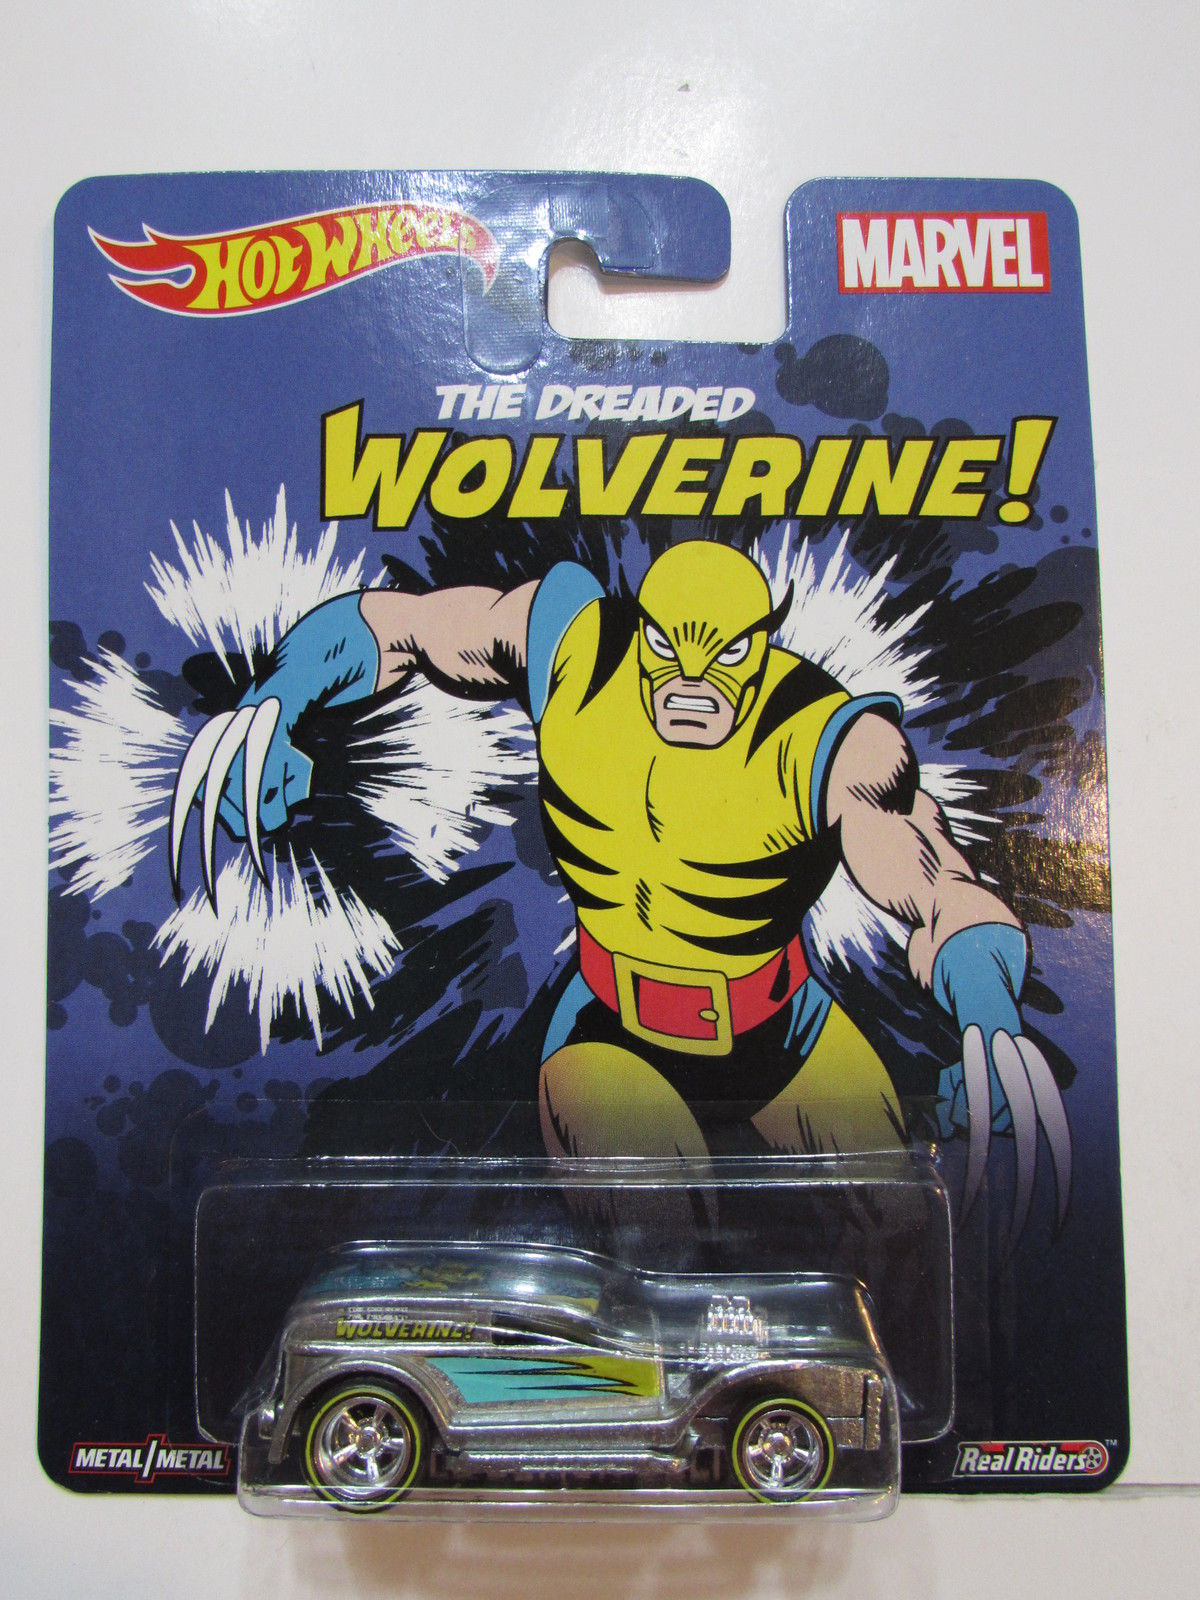 HOT WHEELS MARVEL THE DREADED WOLVERINE - DOUBLE DEMON DELIVERY